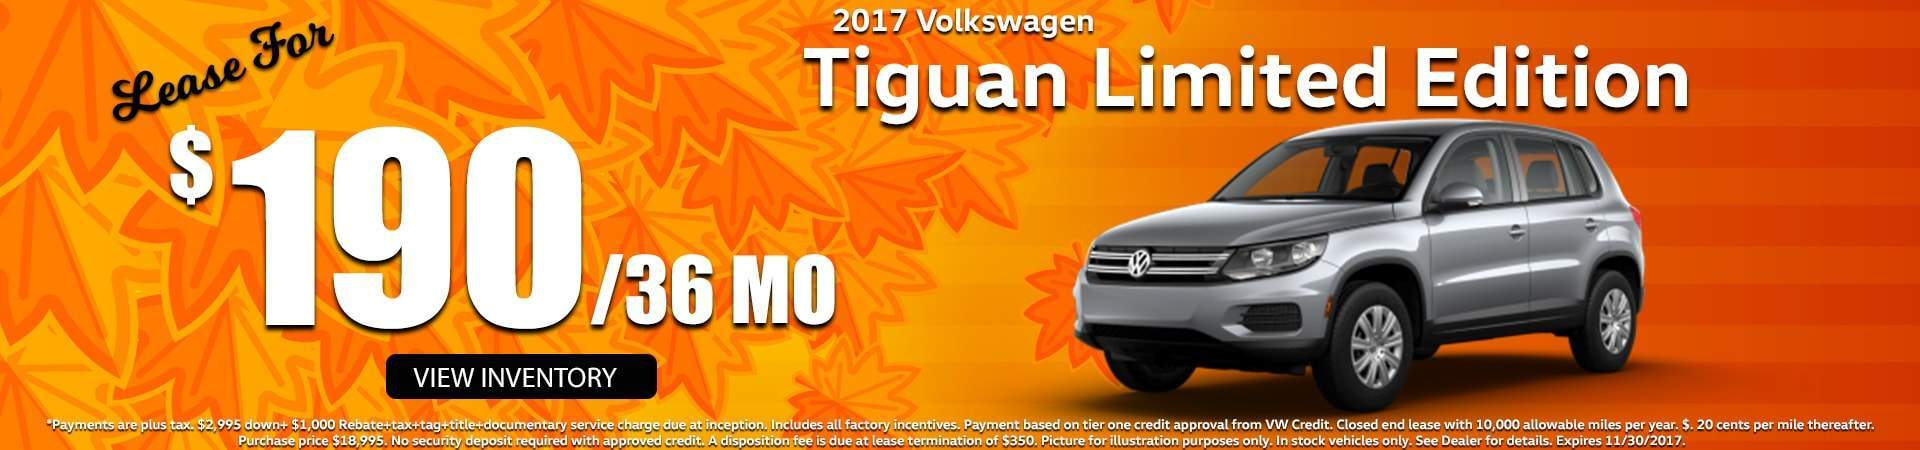 tiguan limited